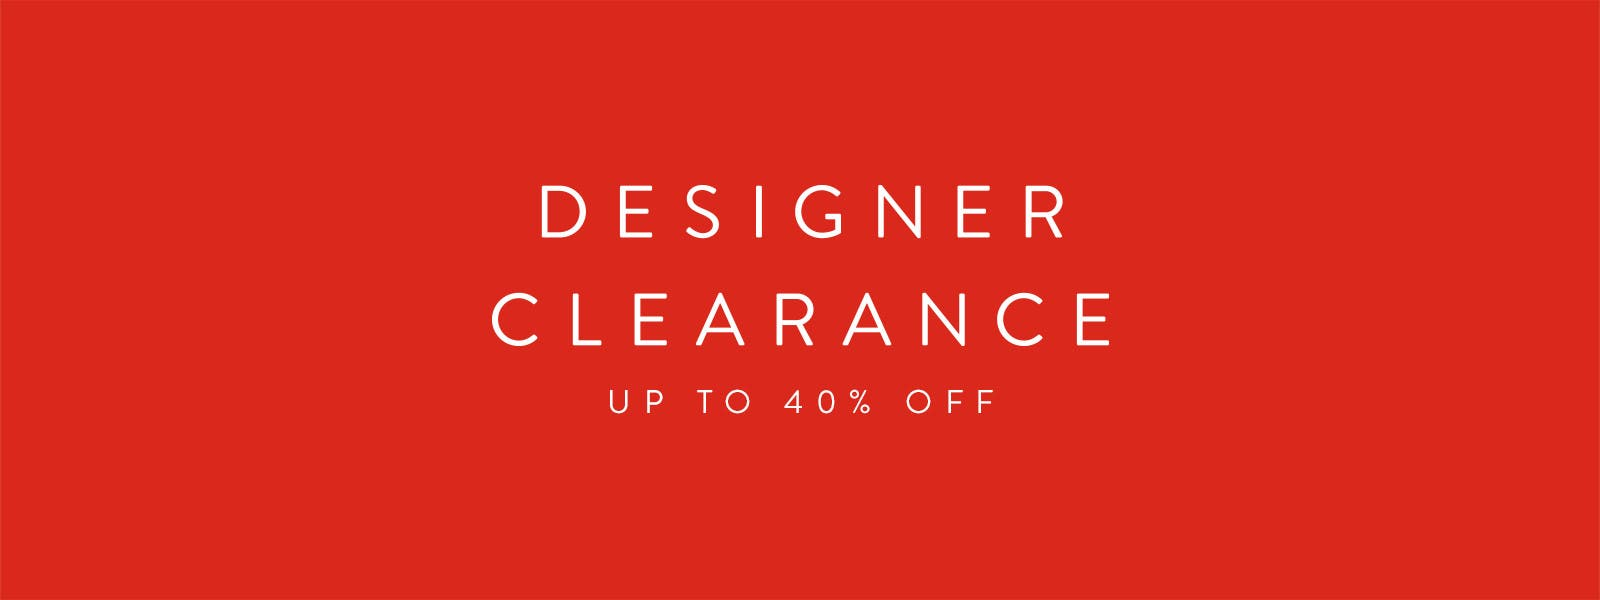 Designer Clearance Sale. Up to 40% off.